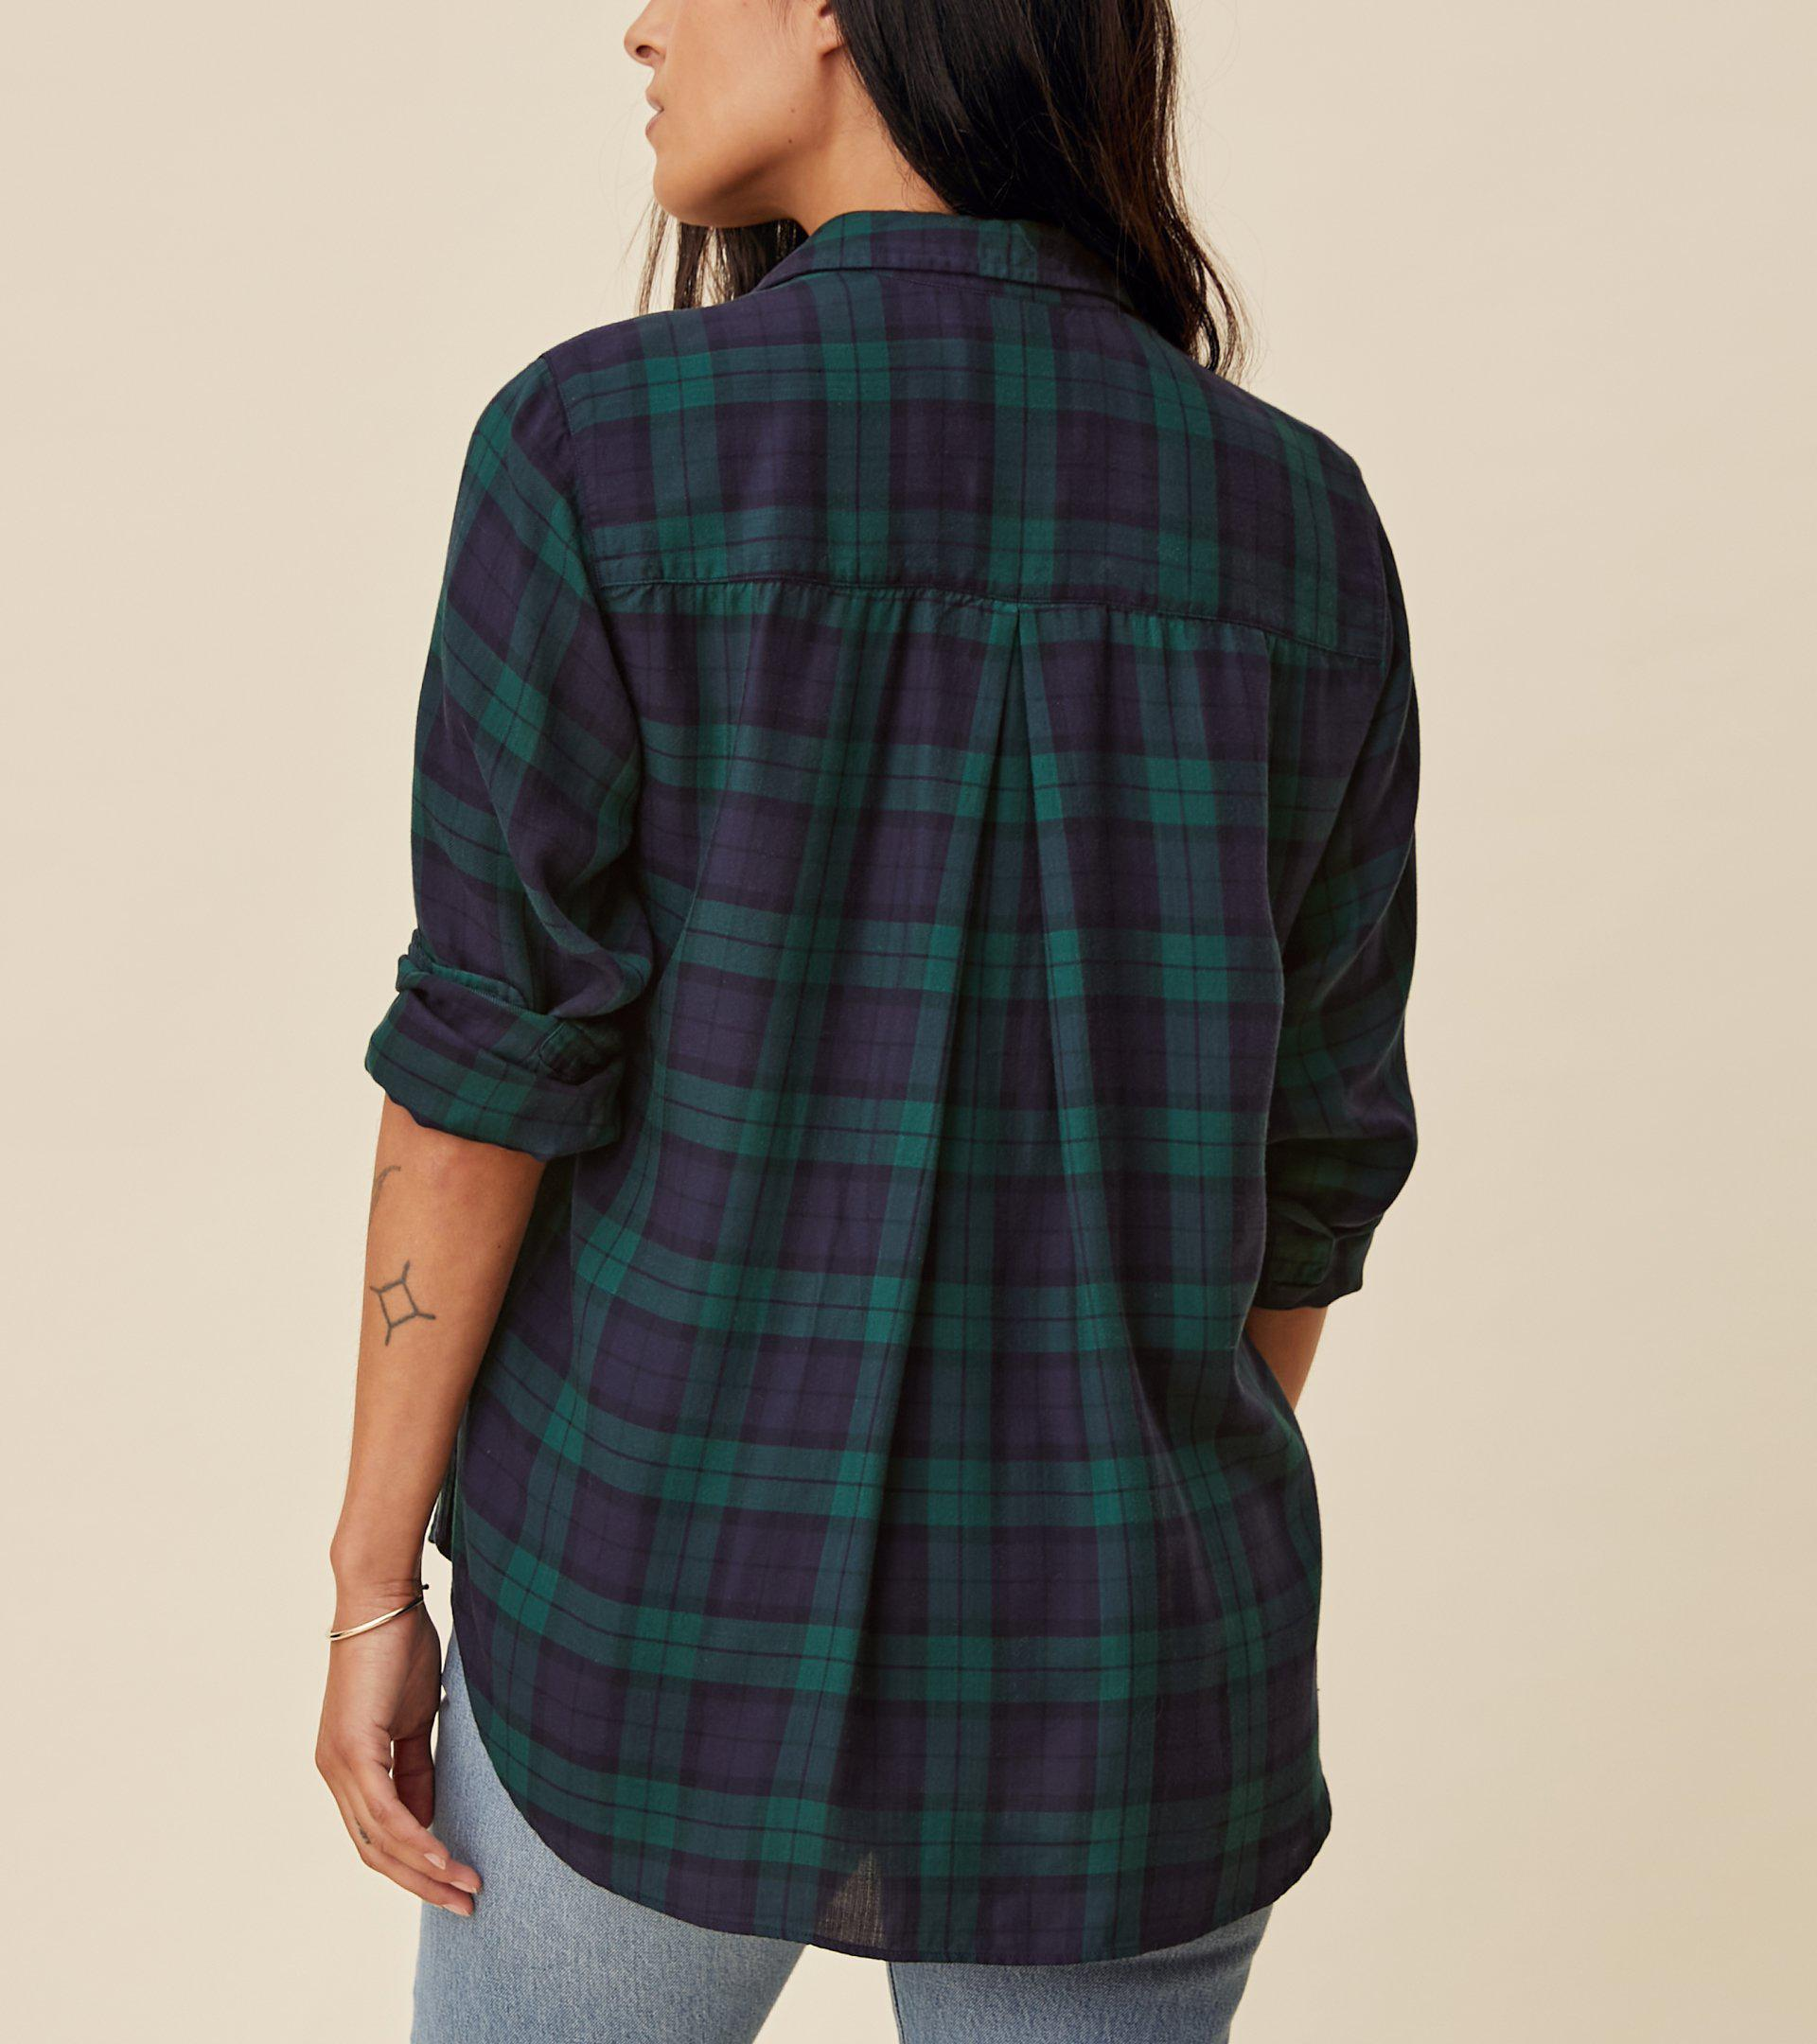 The Hero Navy with Green Plaid, Liquid Flannel 2